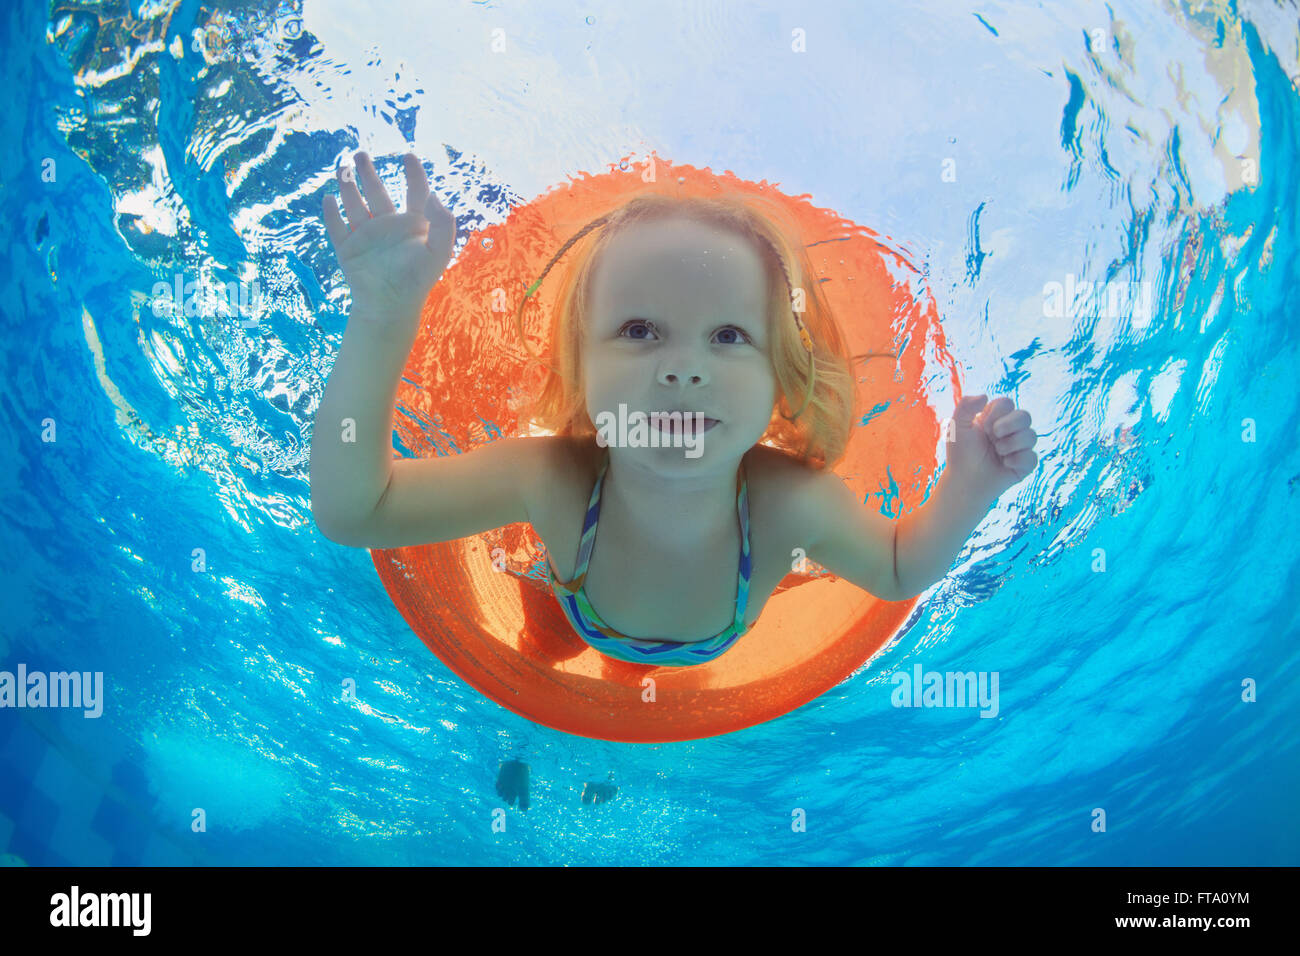 Funny underwater photo of baby girl swimming with fun on orange tube and diving in clear aqua park pool. - Stock Image